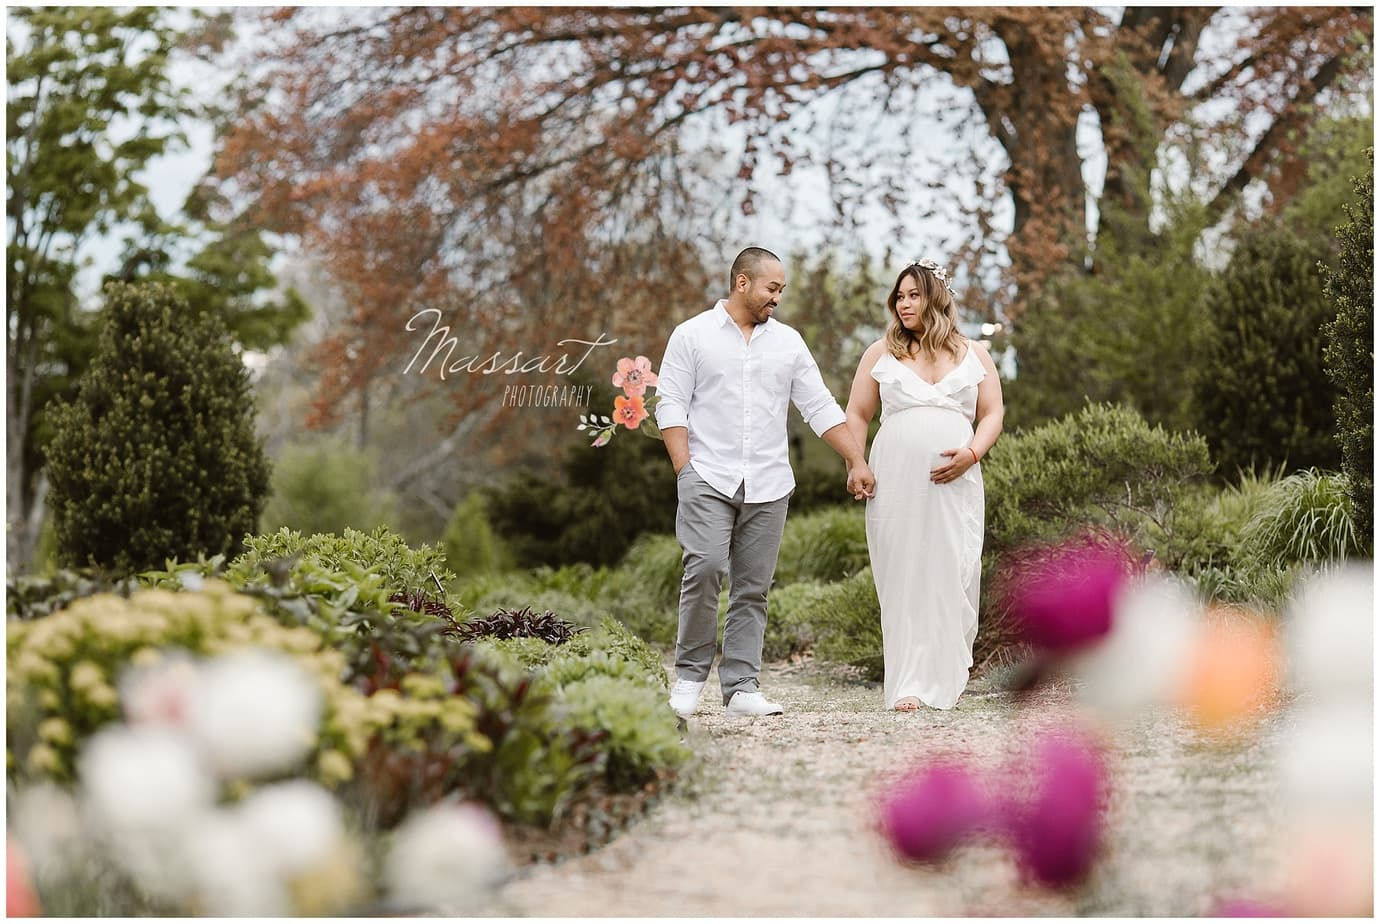 Spring maternity photo shoot in the park by Massart Photography, RI MA CT